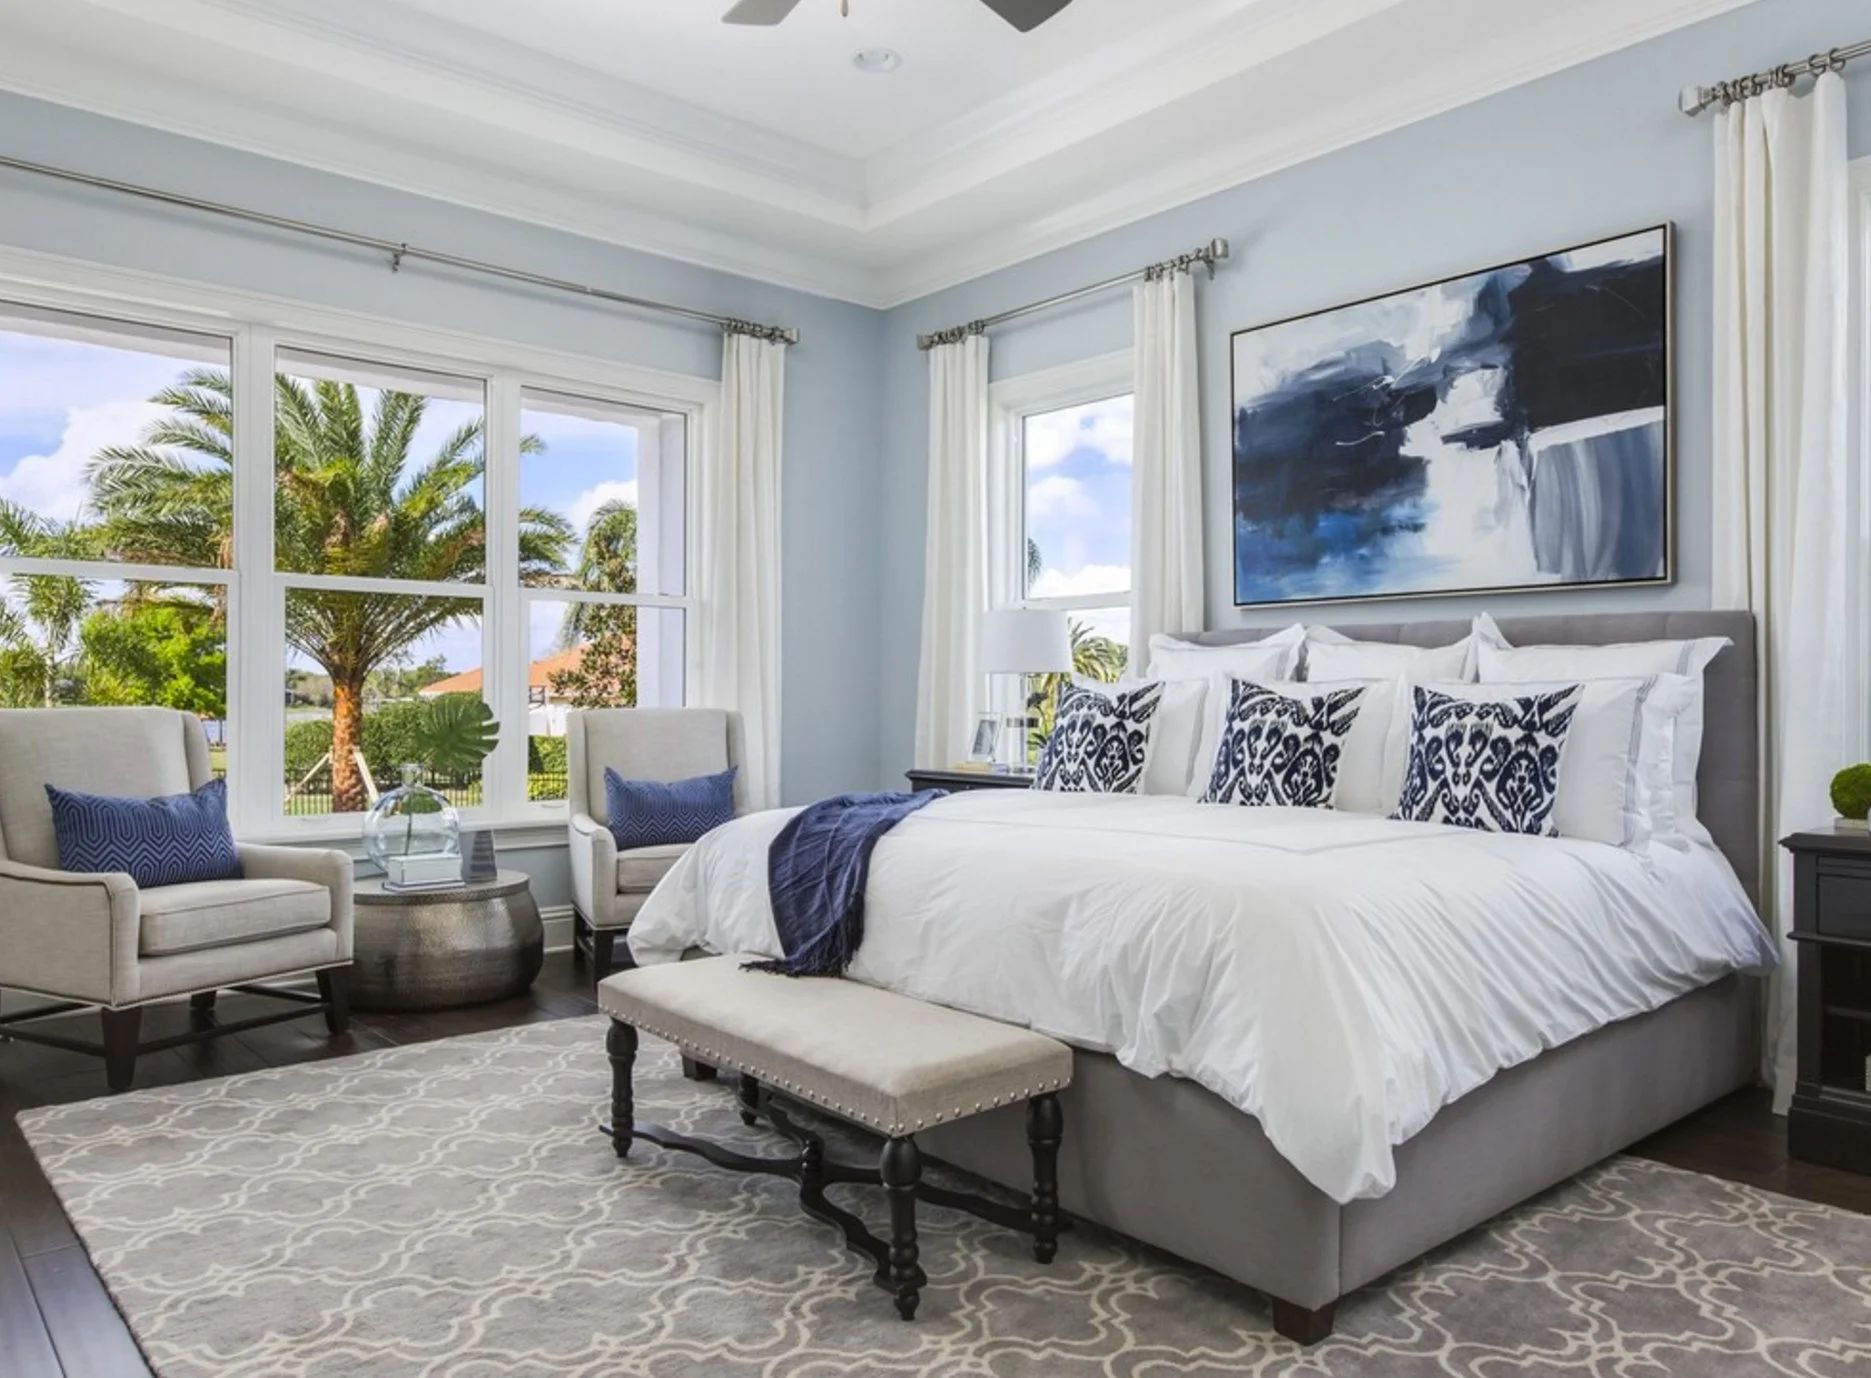 Wall color is sherwin williams misty via elegant home builders